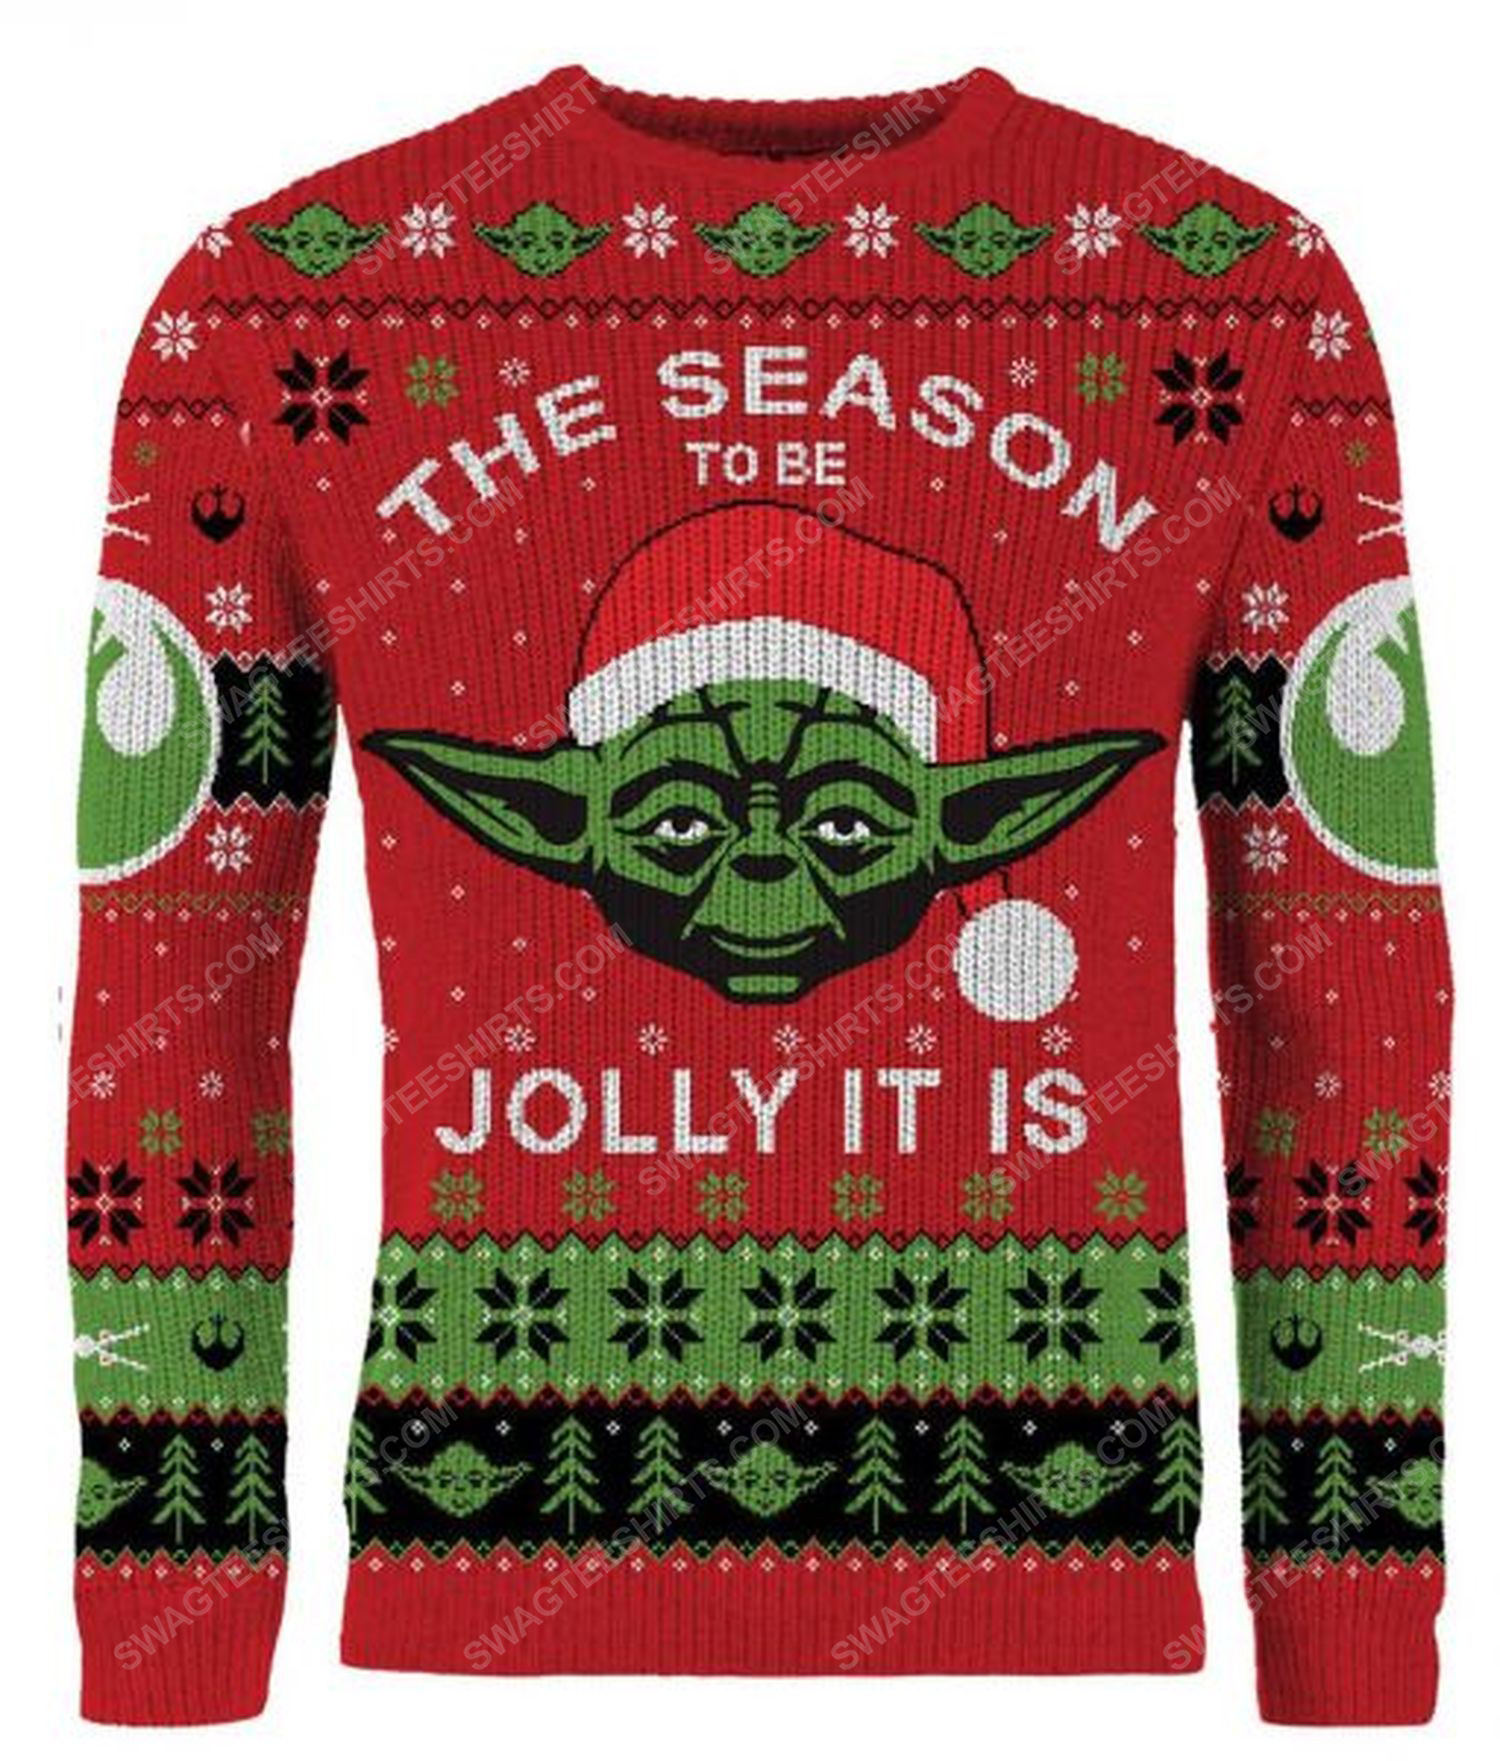 Star wars the season to be jolly it is full print ugly christmas sweater 1